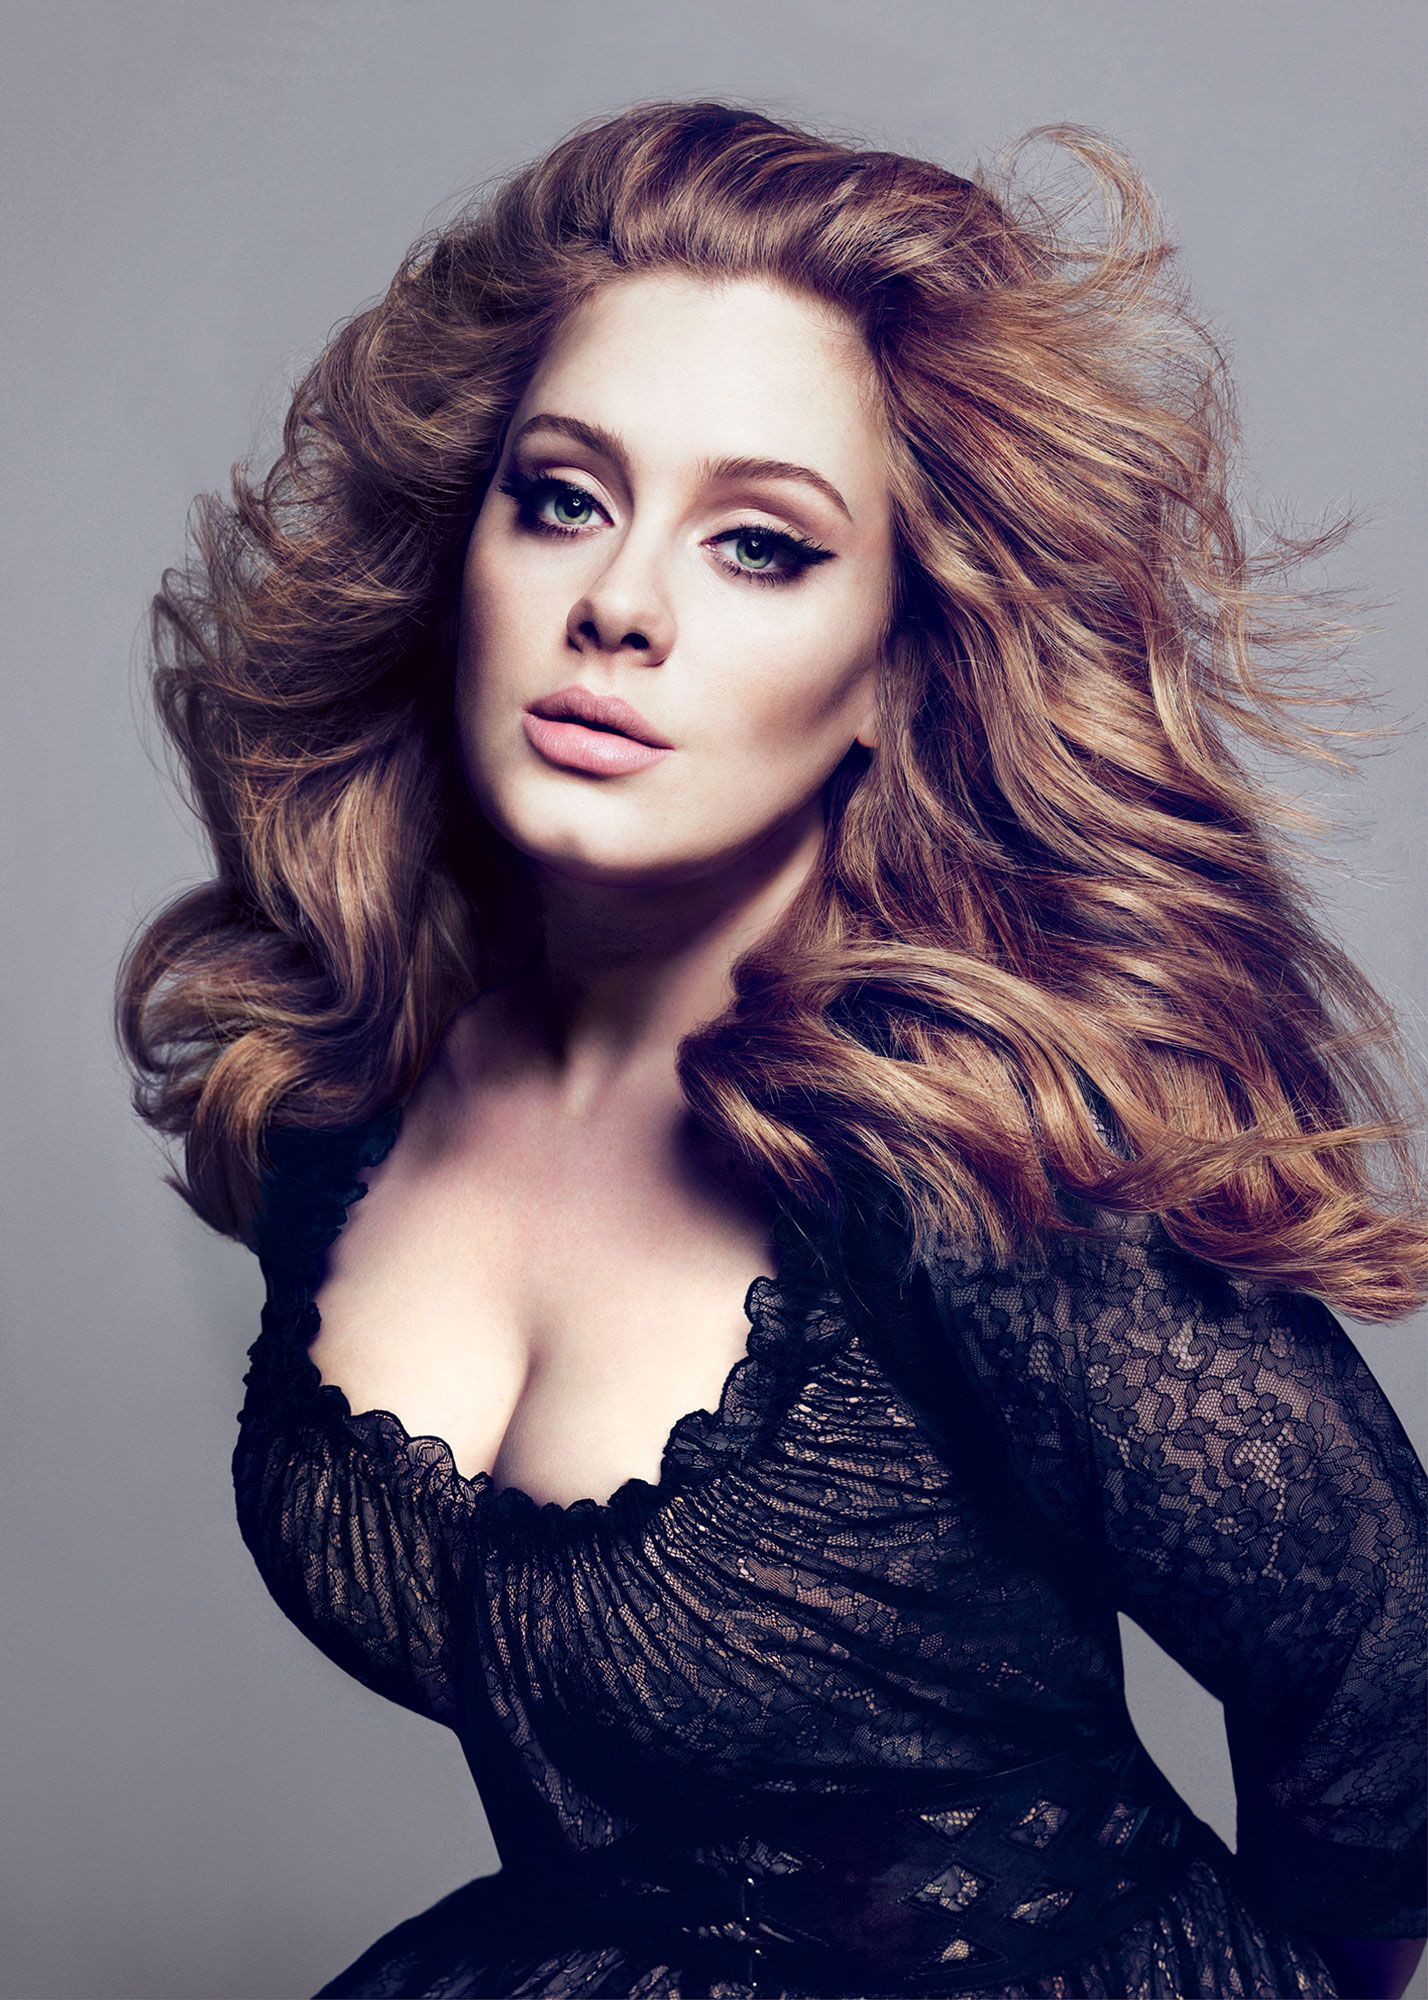 0e0f8f55adfa2a159167725f4f849412 21 Things You Never Knew About Adele